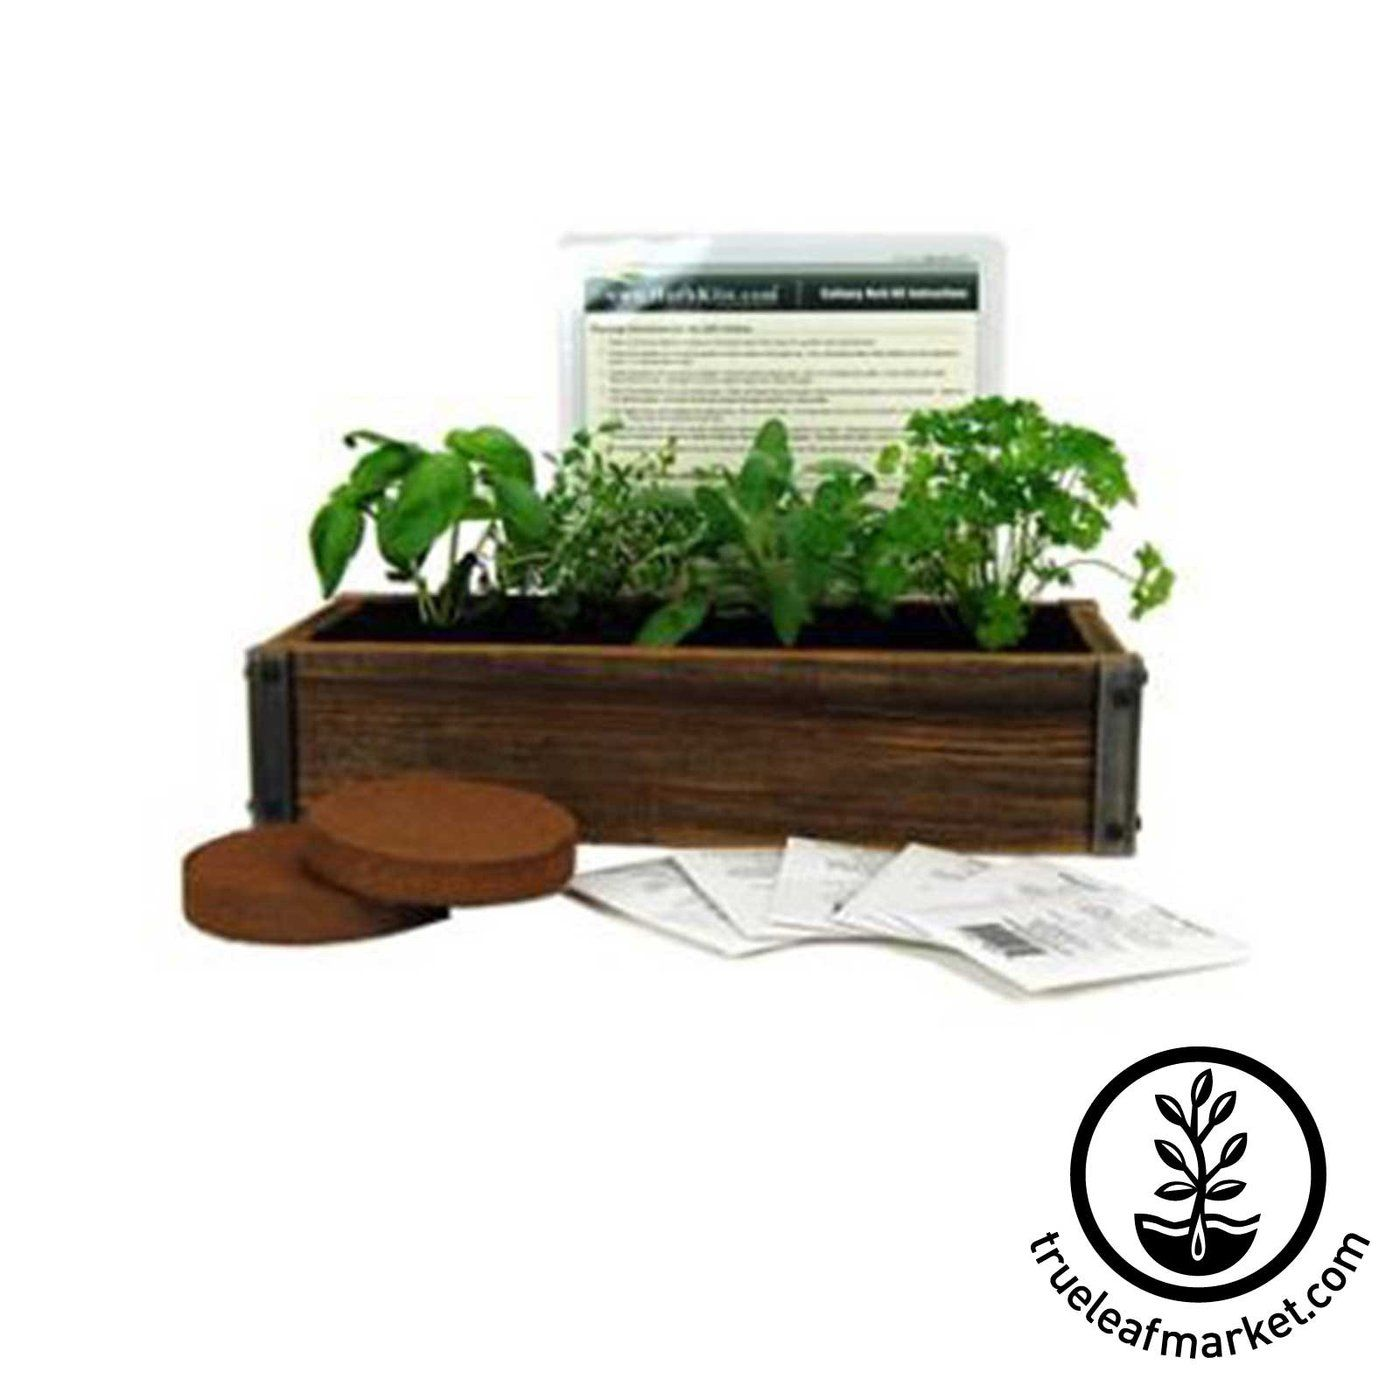 Complete Kit To Grow Your Own Culinary Herb Garden On Kitchen Countertop With This